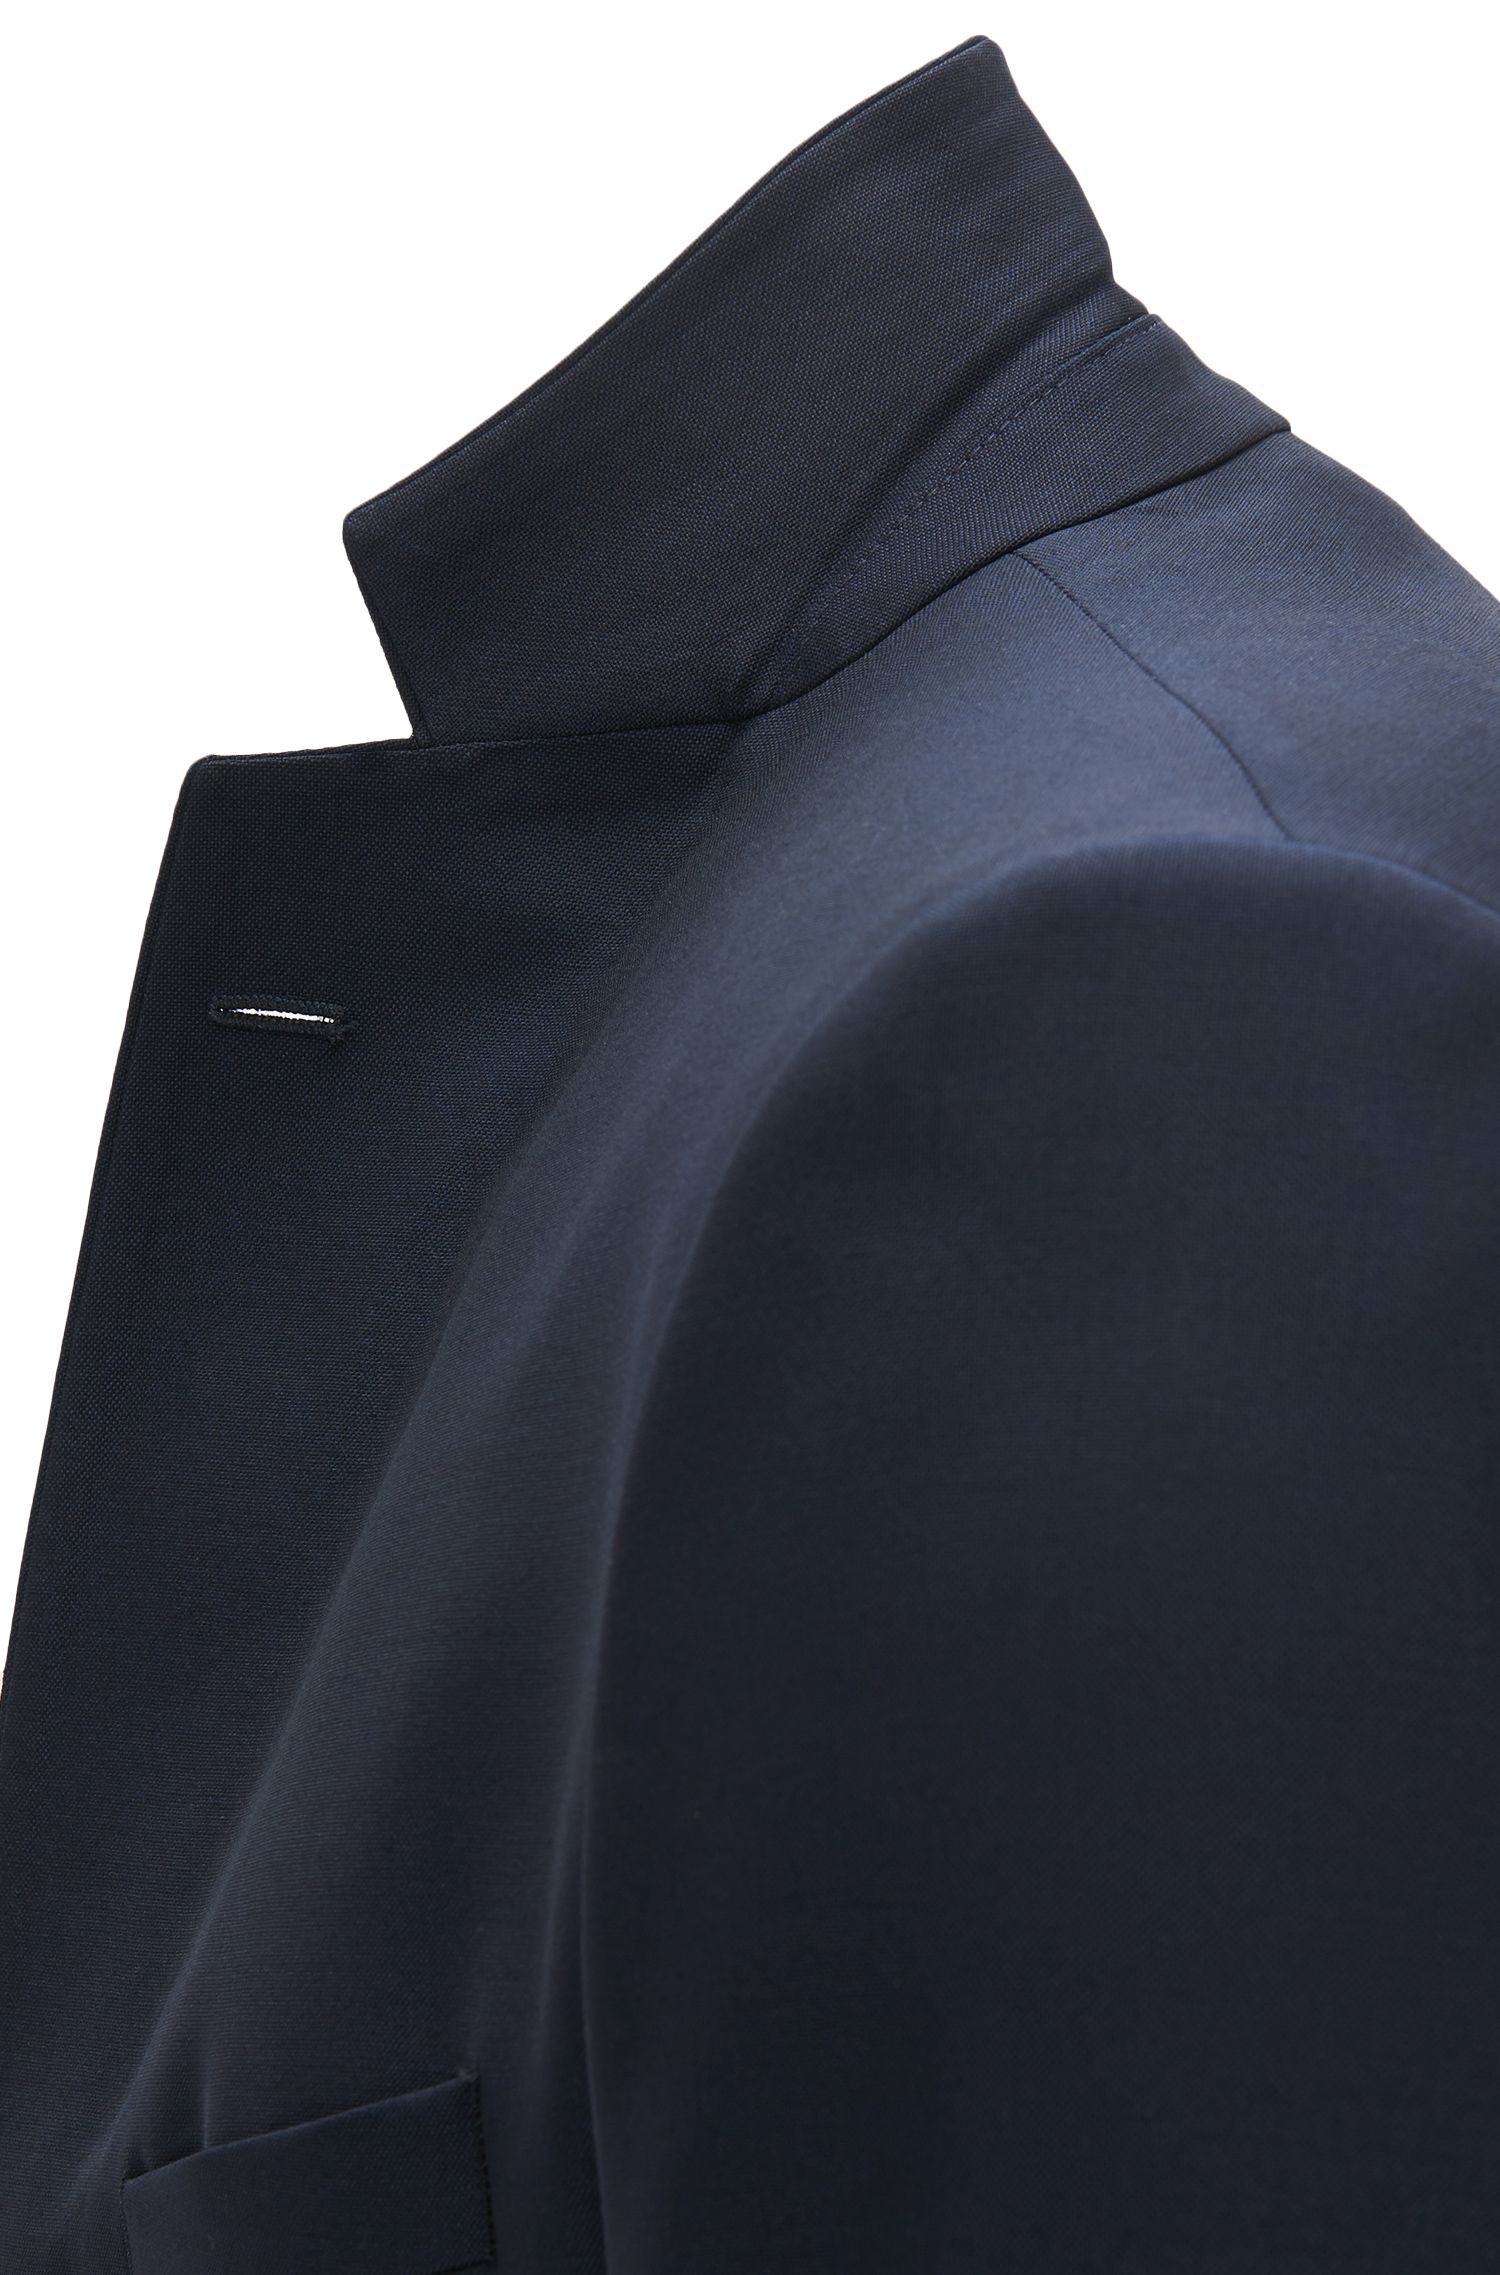 Virgin Mohair Sport Coat, Extra Slim Fit | Rodwil, Dark Blue